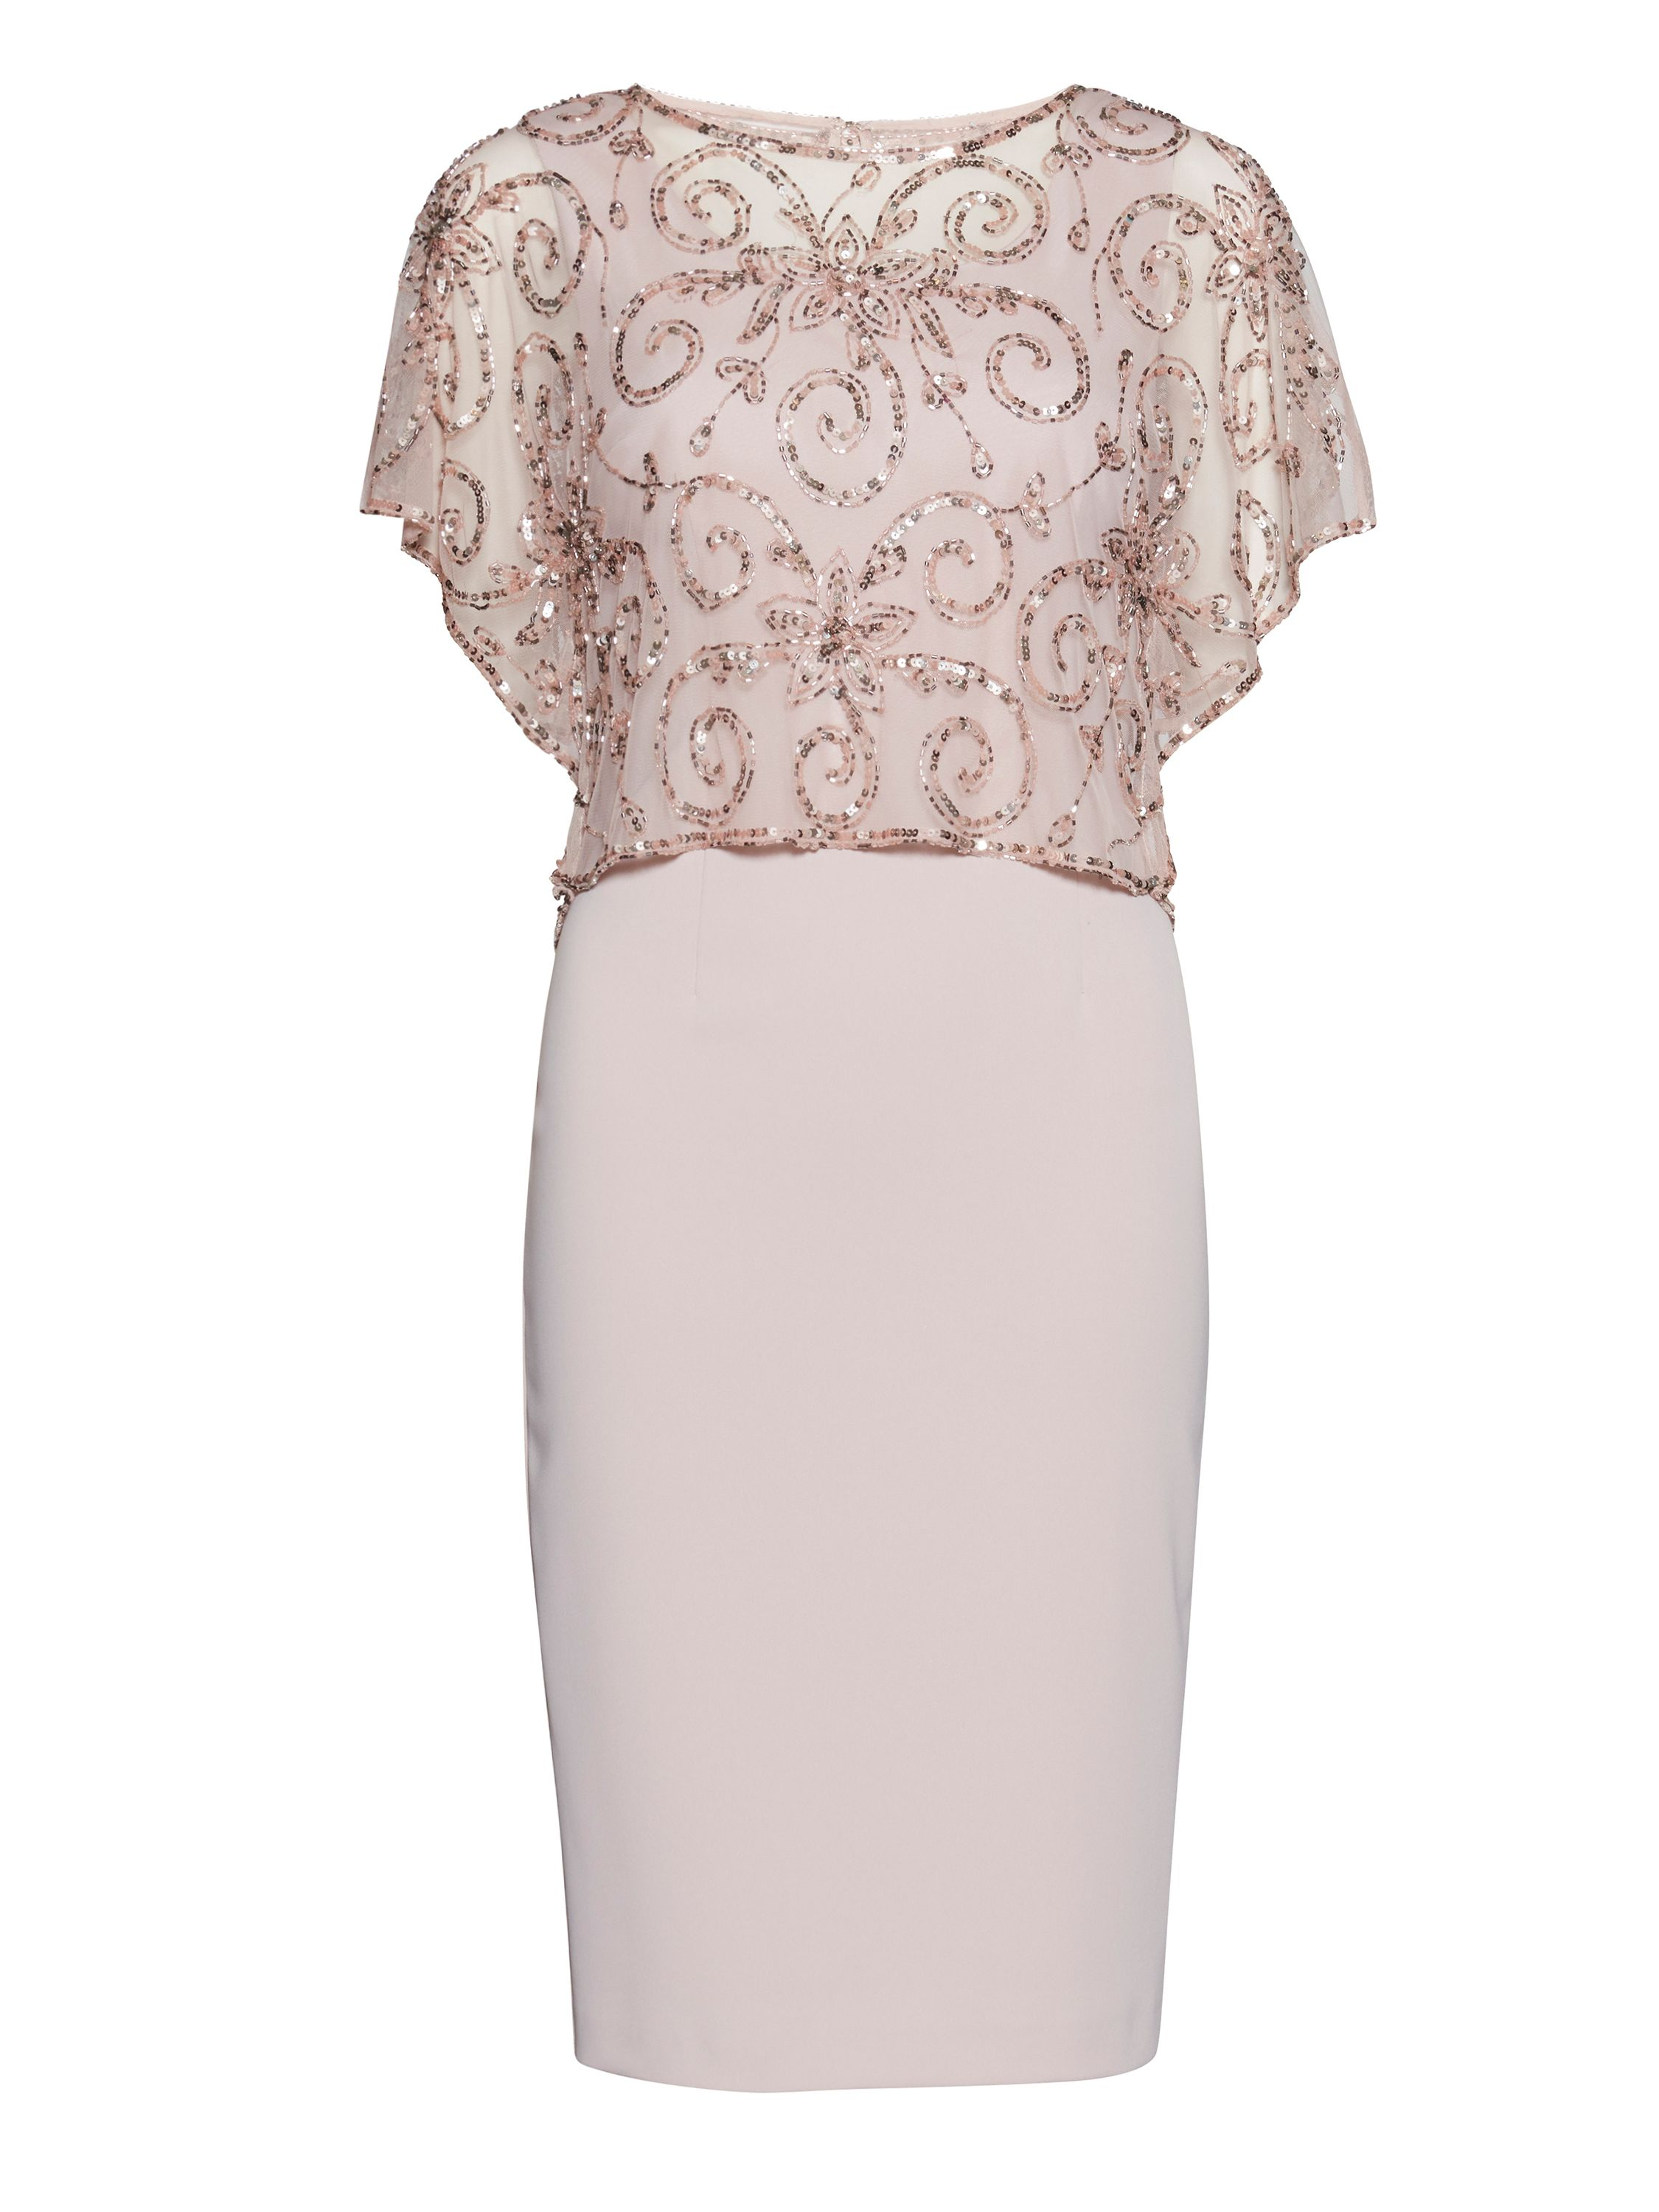 Gina Bacconi Crepe dress with beaded over top, Pink